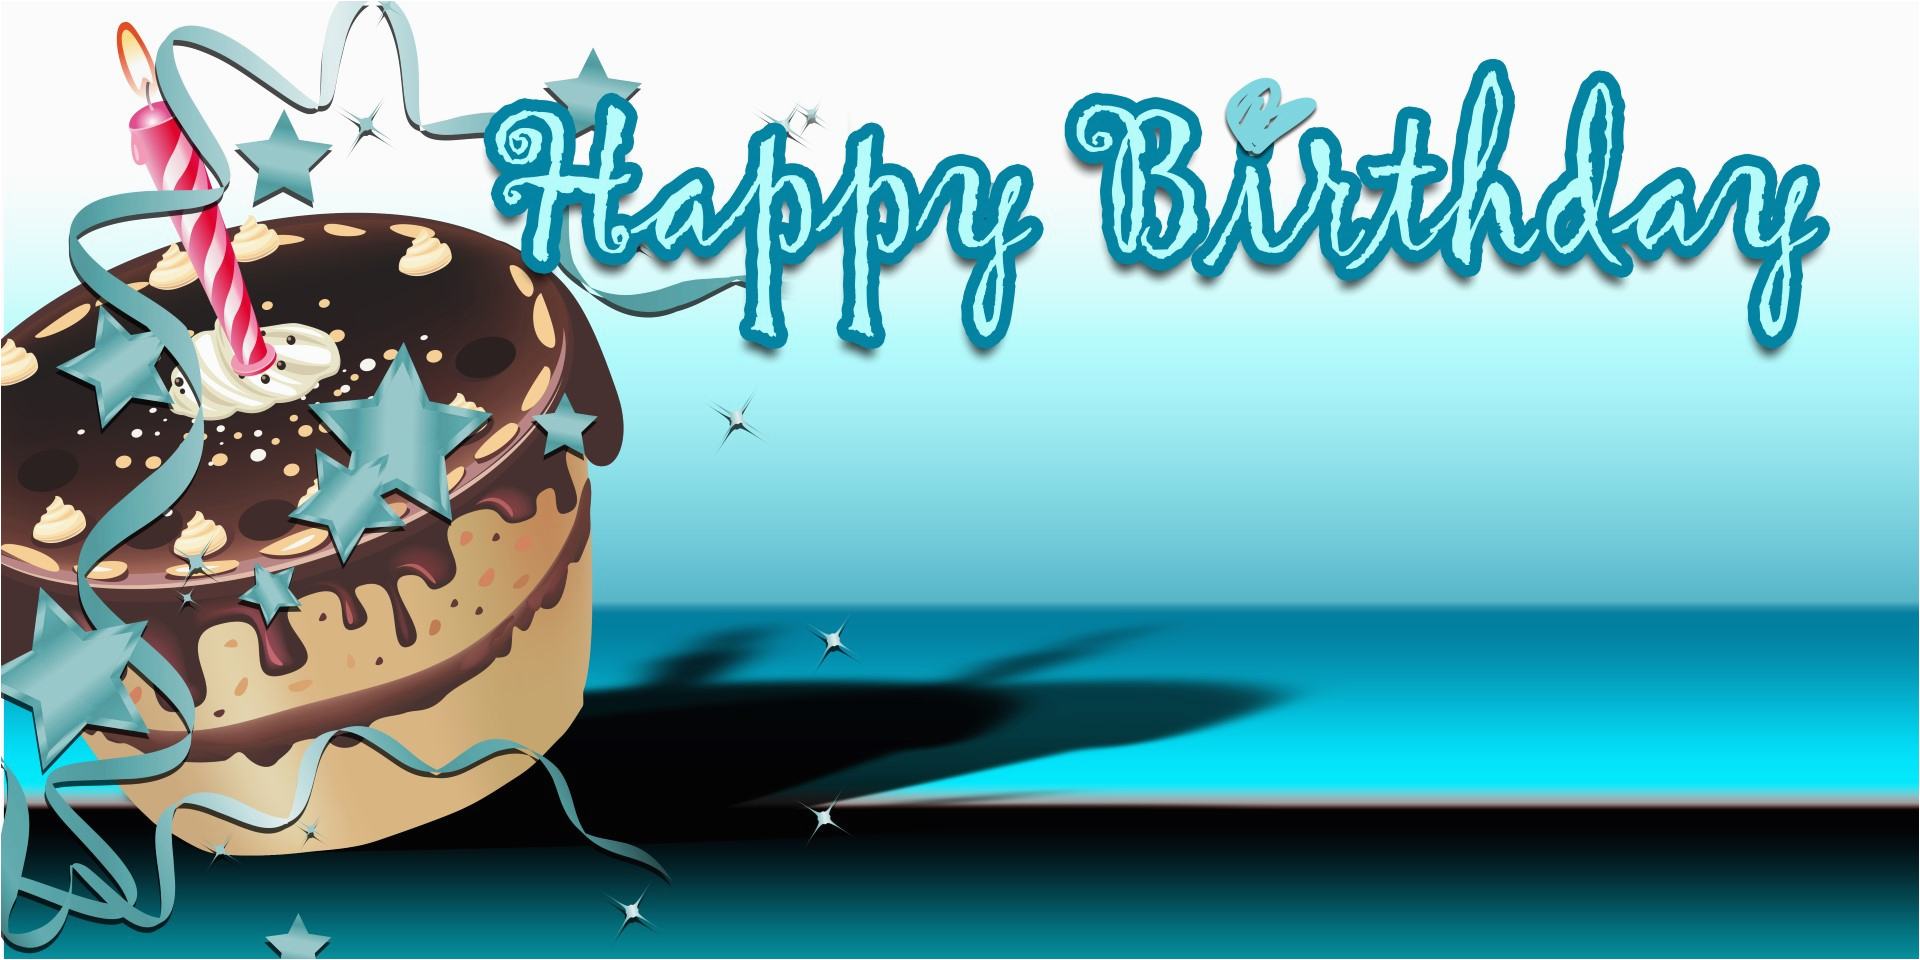 Happy Birthday Cake Banner Target Birthday Banners Cake Teal